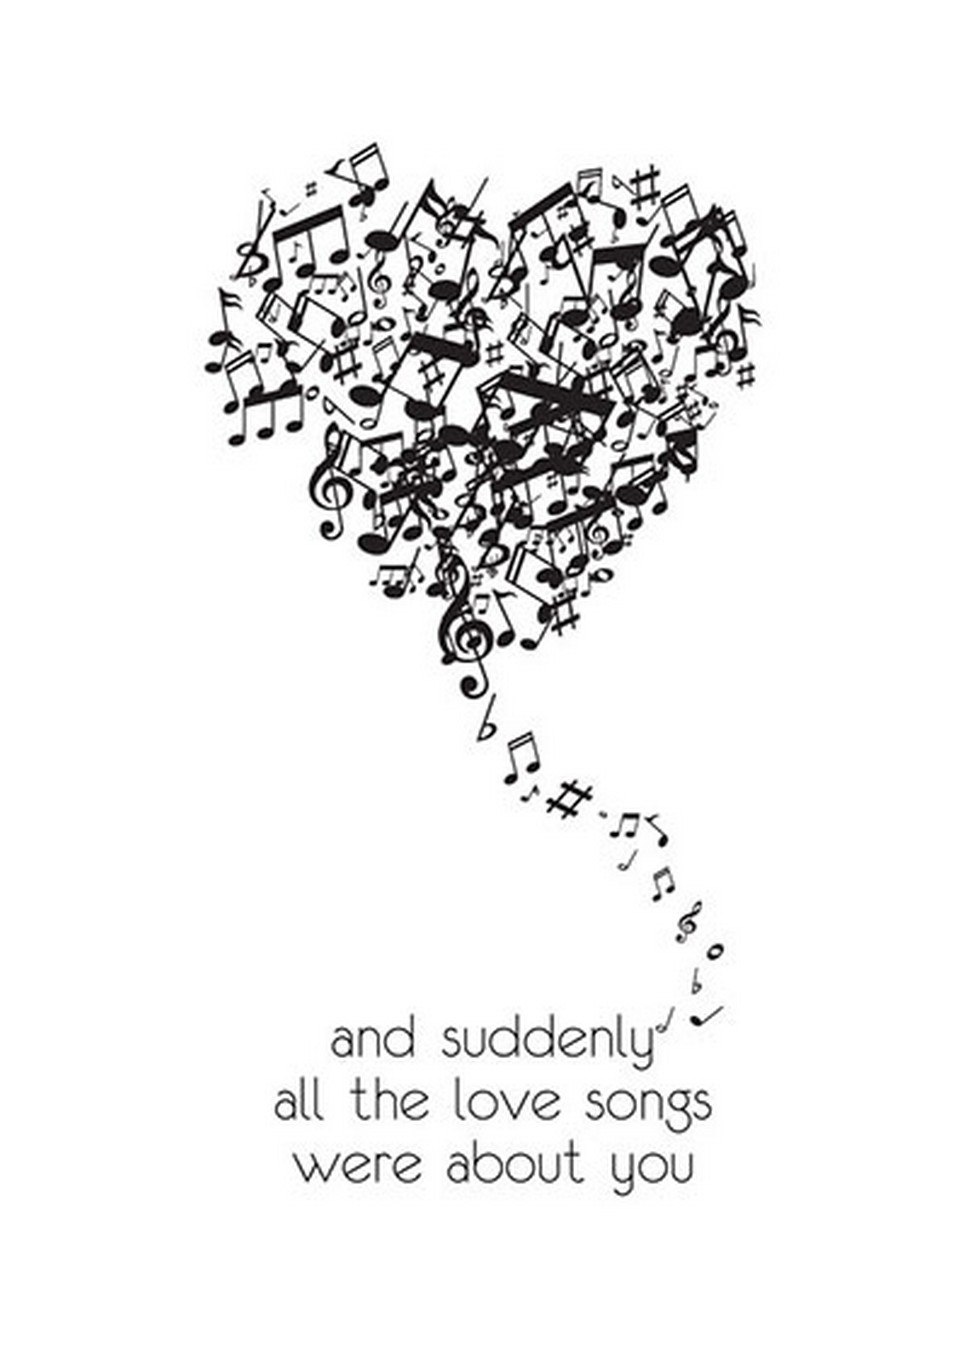 Catchy Home Wall Poster All Love All Love Songs Wall Decor Poster By A Matter Any Room Style Songs About Hometowns Country Songs About Homesickness curbed Songs About Home